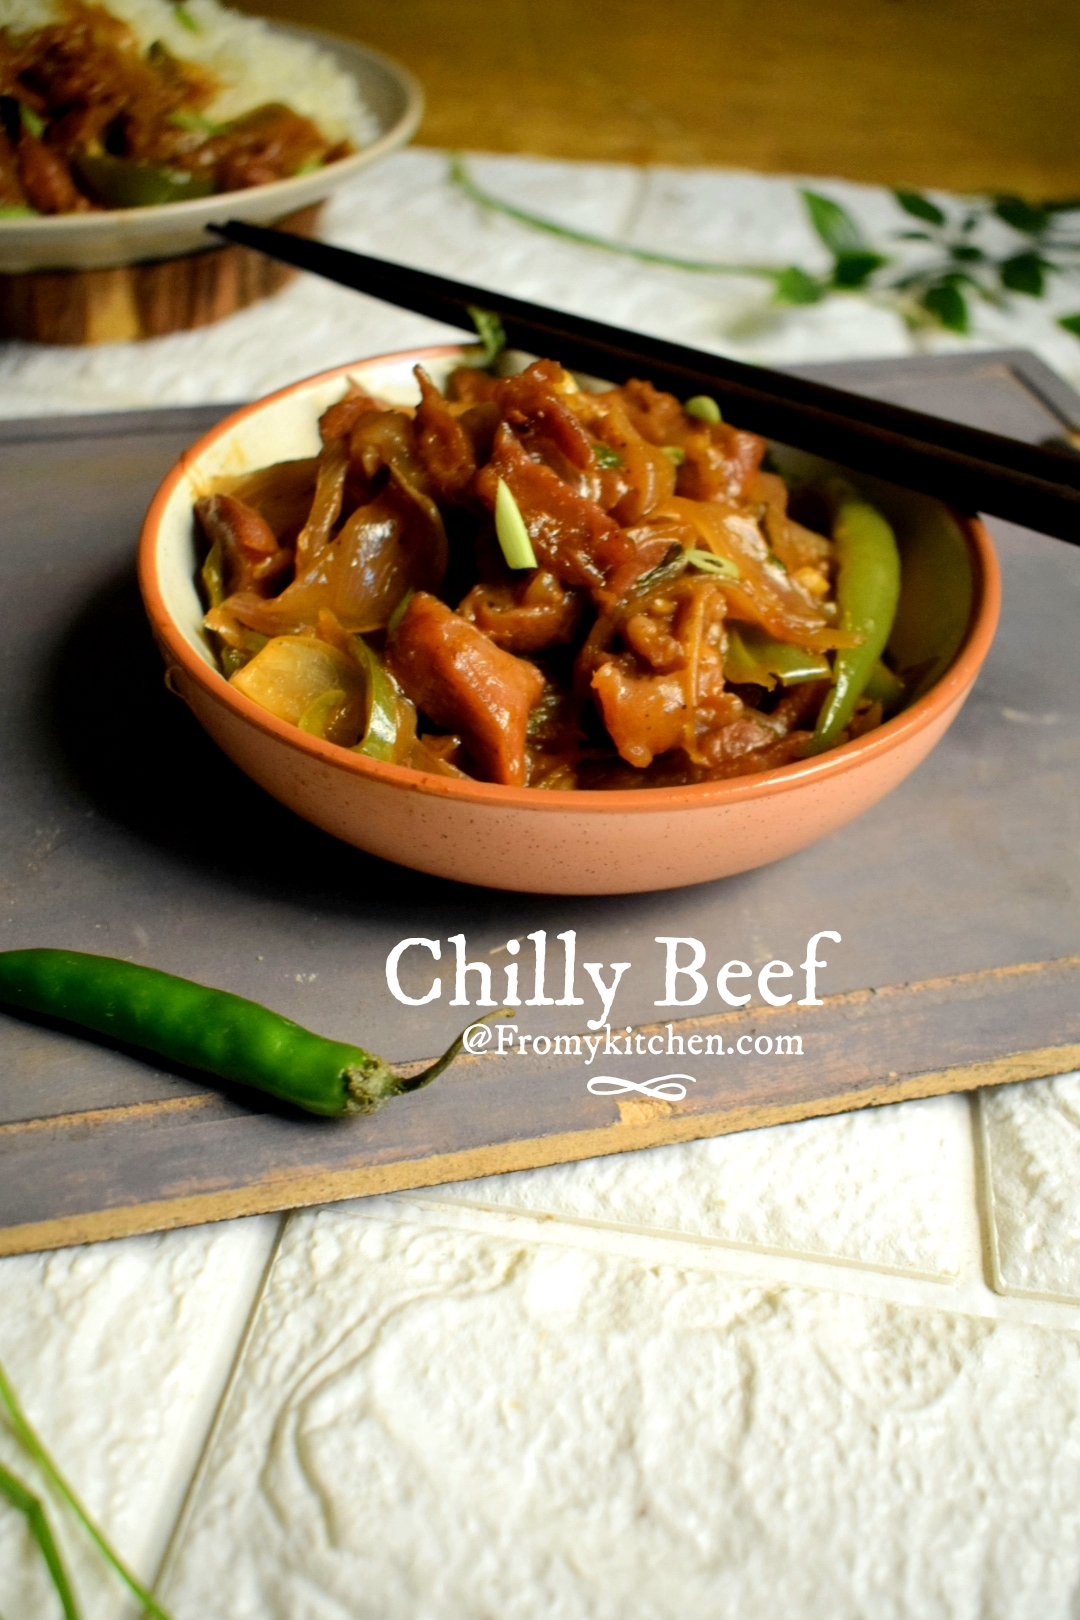 Chilly Beef